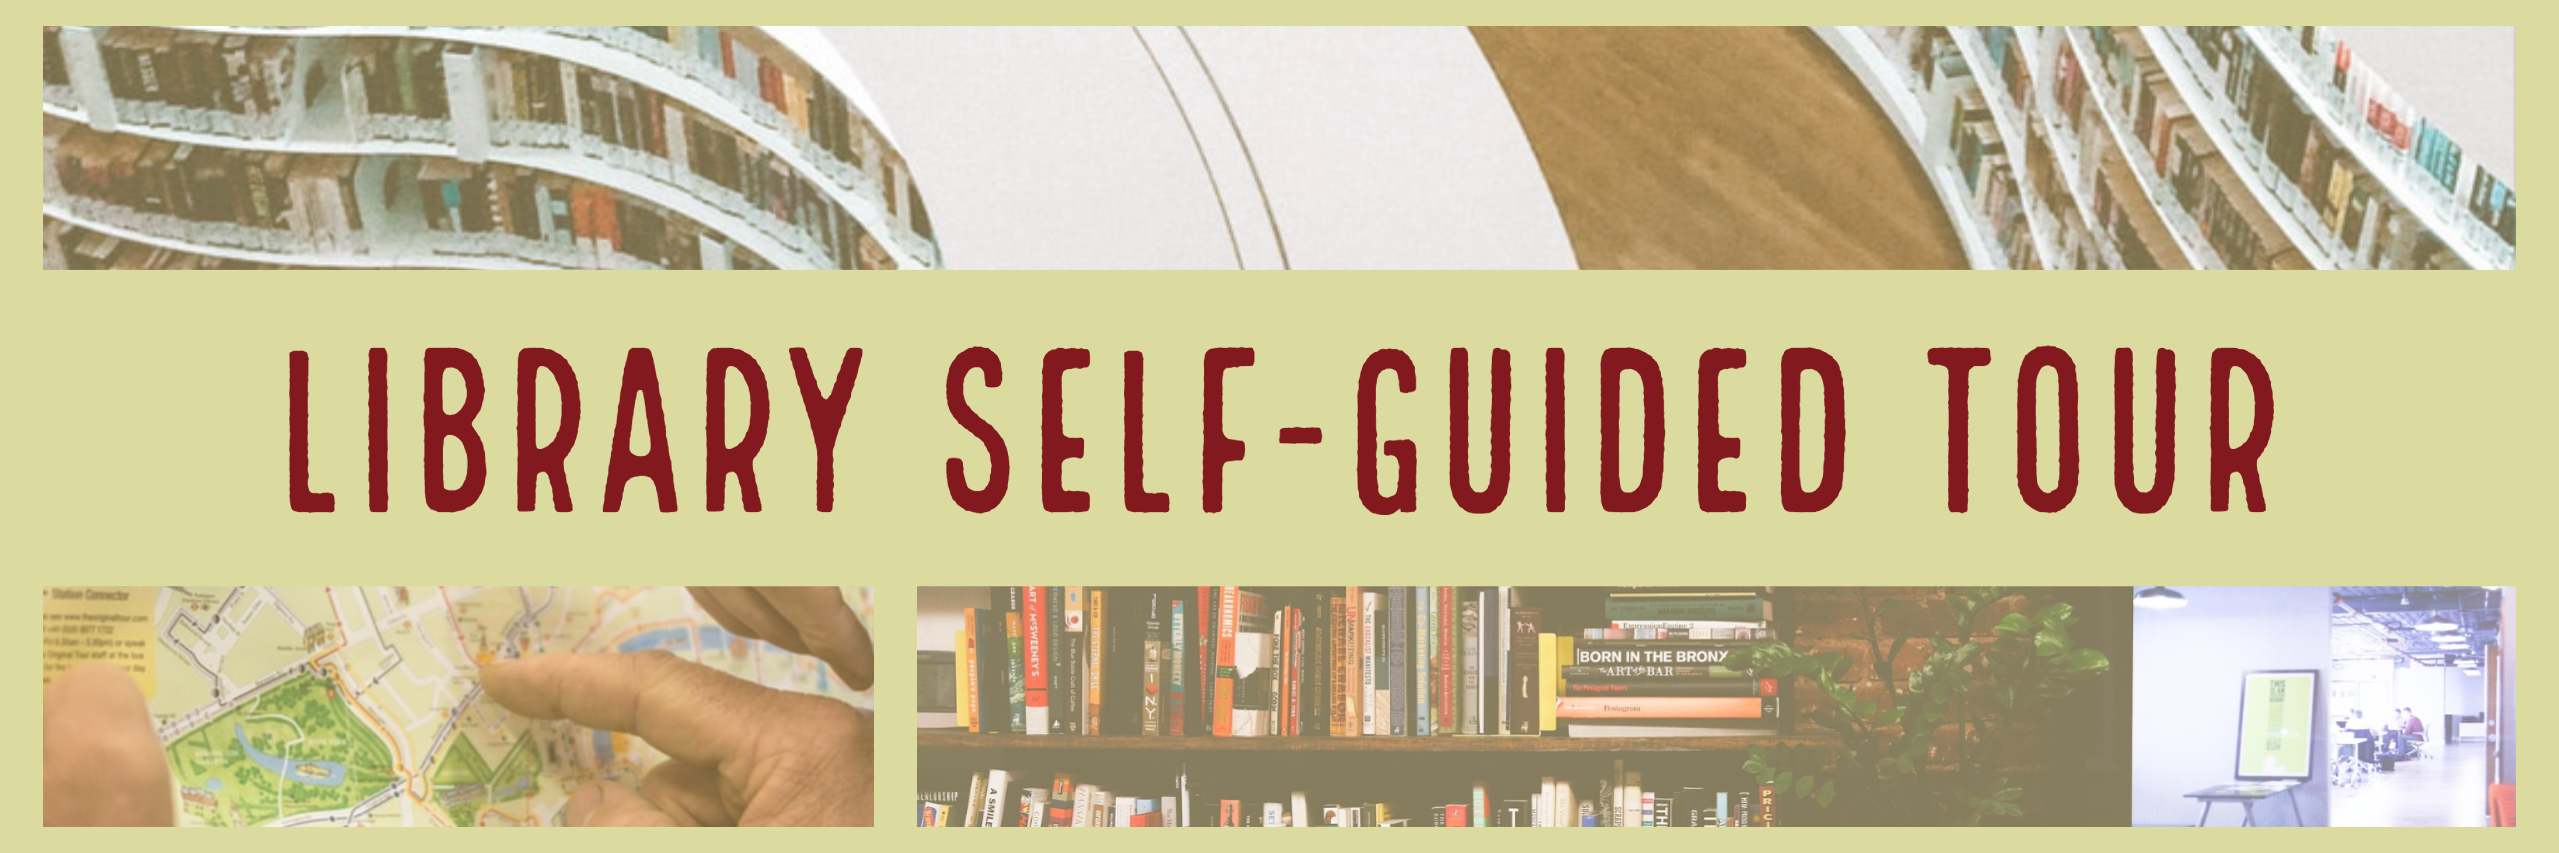 library self-guided tour banner